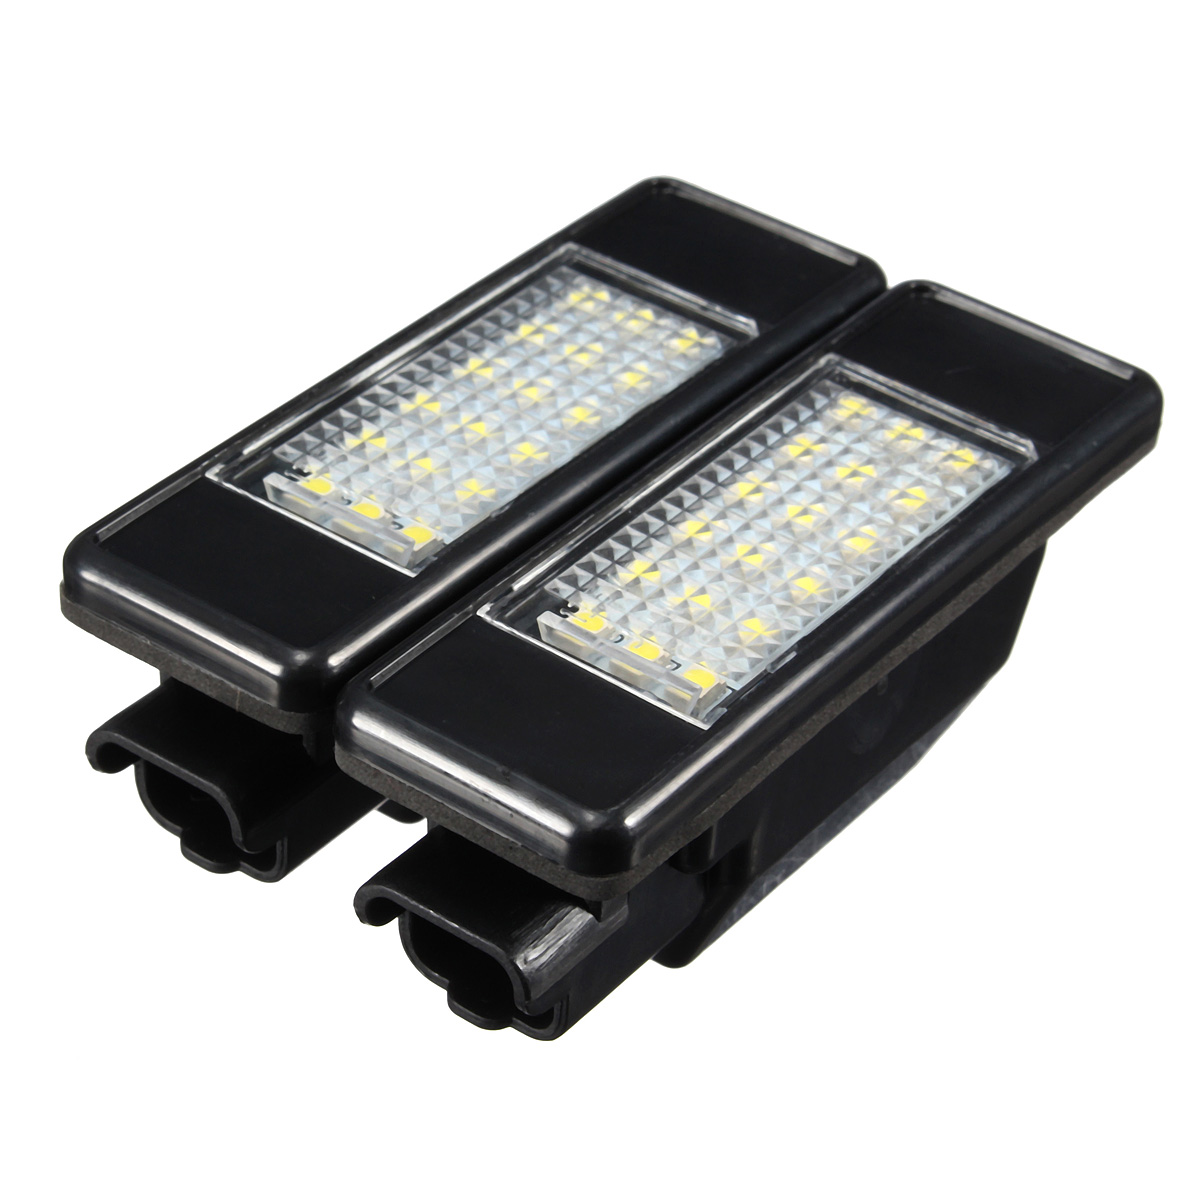 2X Car Rear 18 LED SMD License Number Plate Light Lamp 6000K For <font><b>Peugeot</b></font> 106 207 307 308 <font><b>406</b></font> 407 508 For CITROEN C3 C4 C5 C6 C8 image